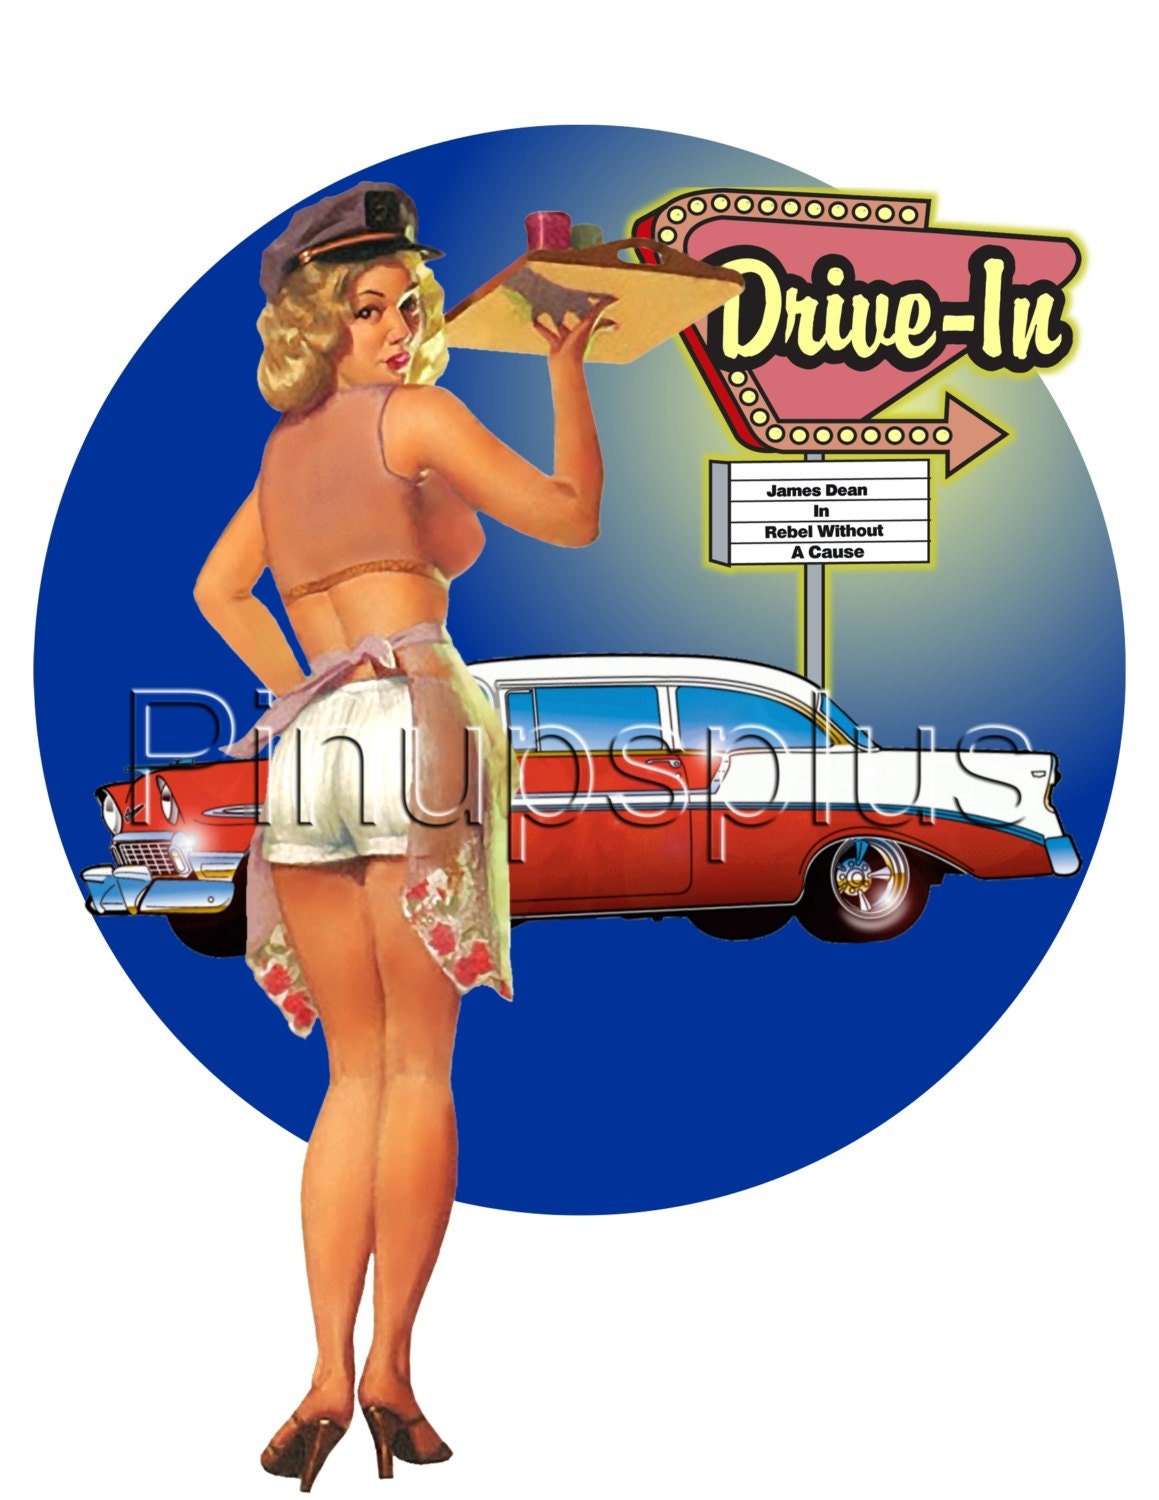 Retro 50s Drive-In Pinup carhop Waterslide Decal for guitars